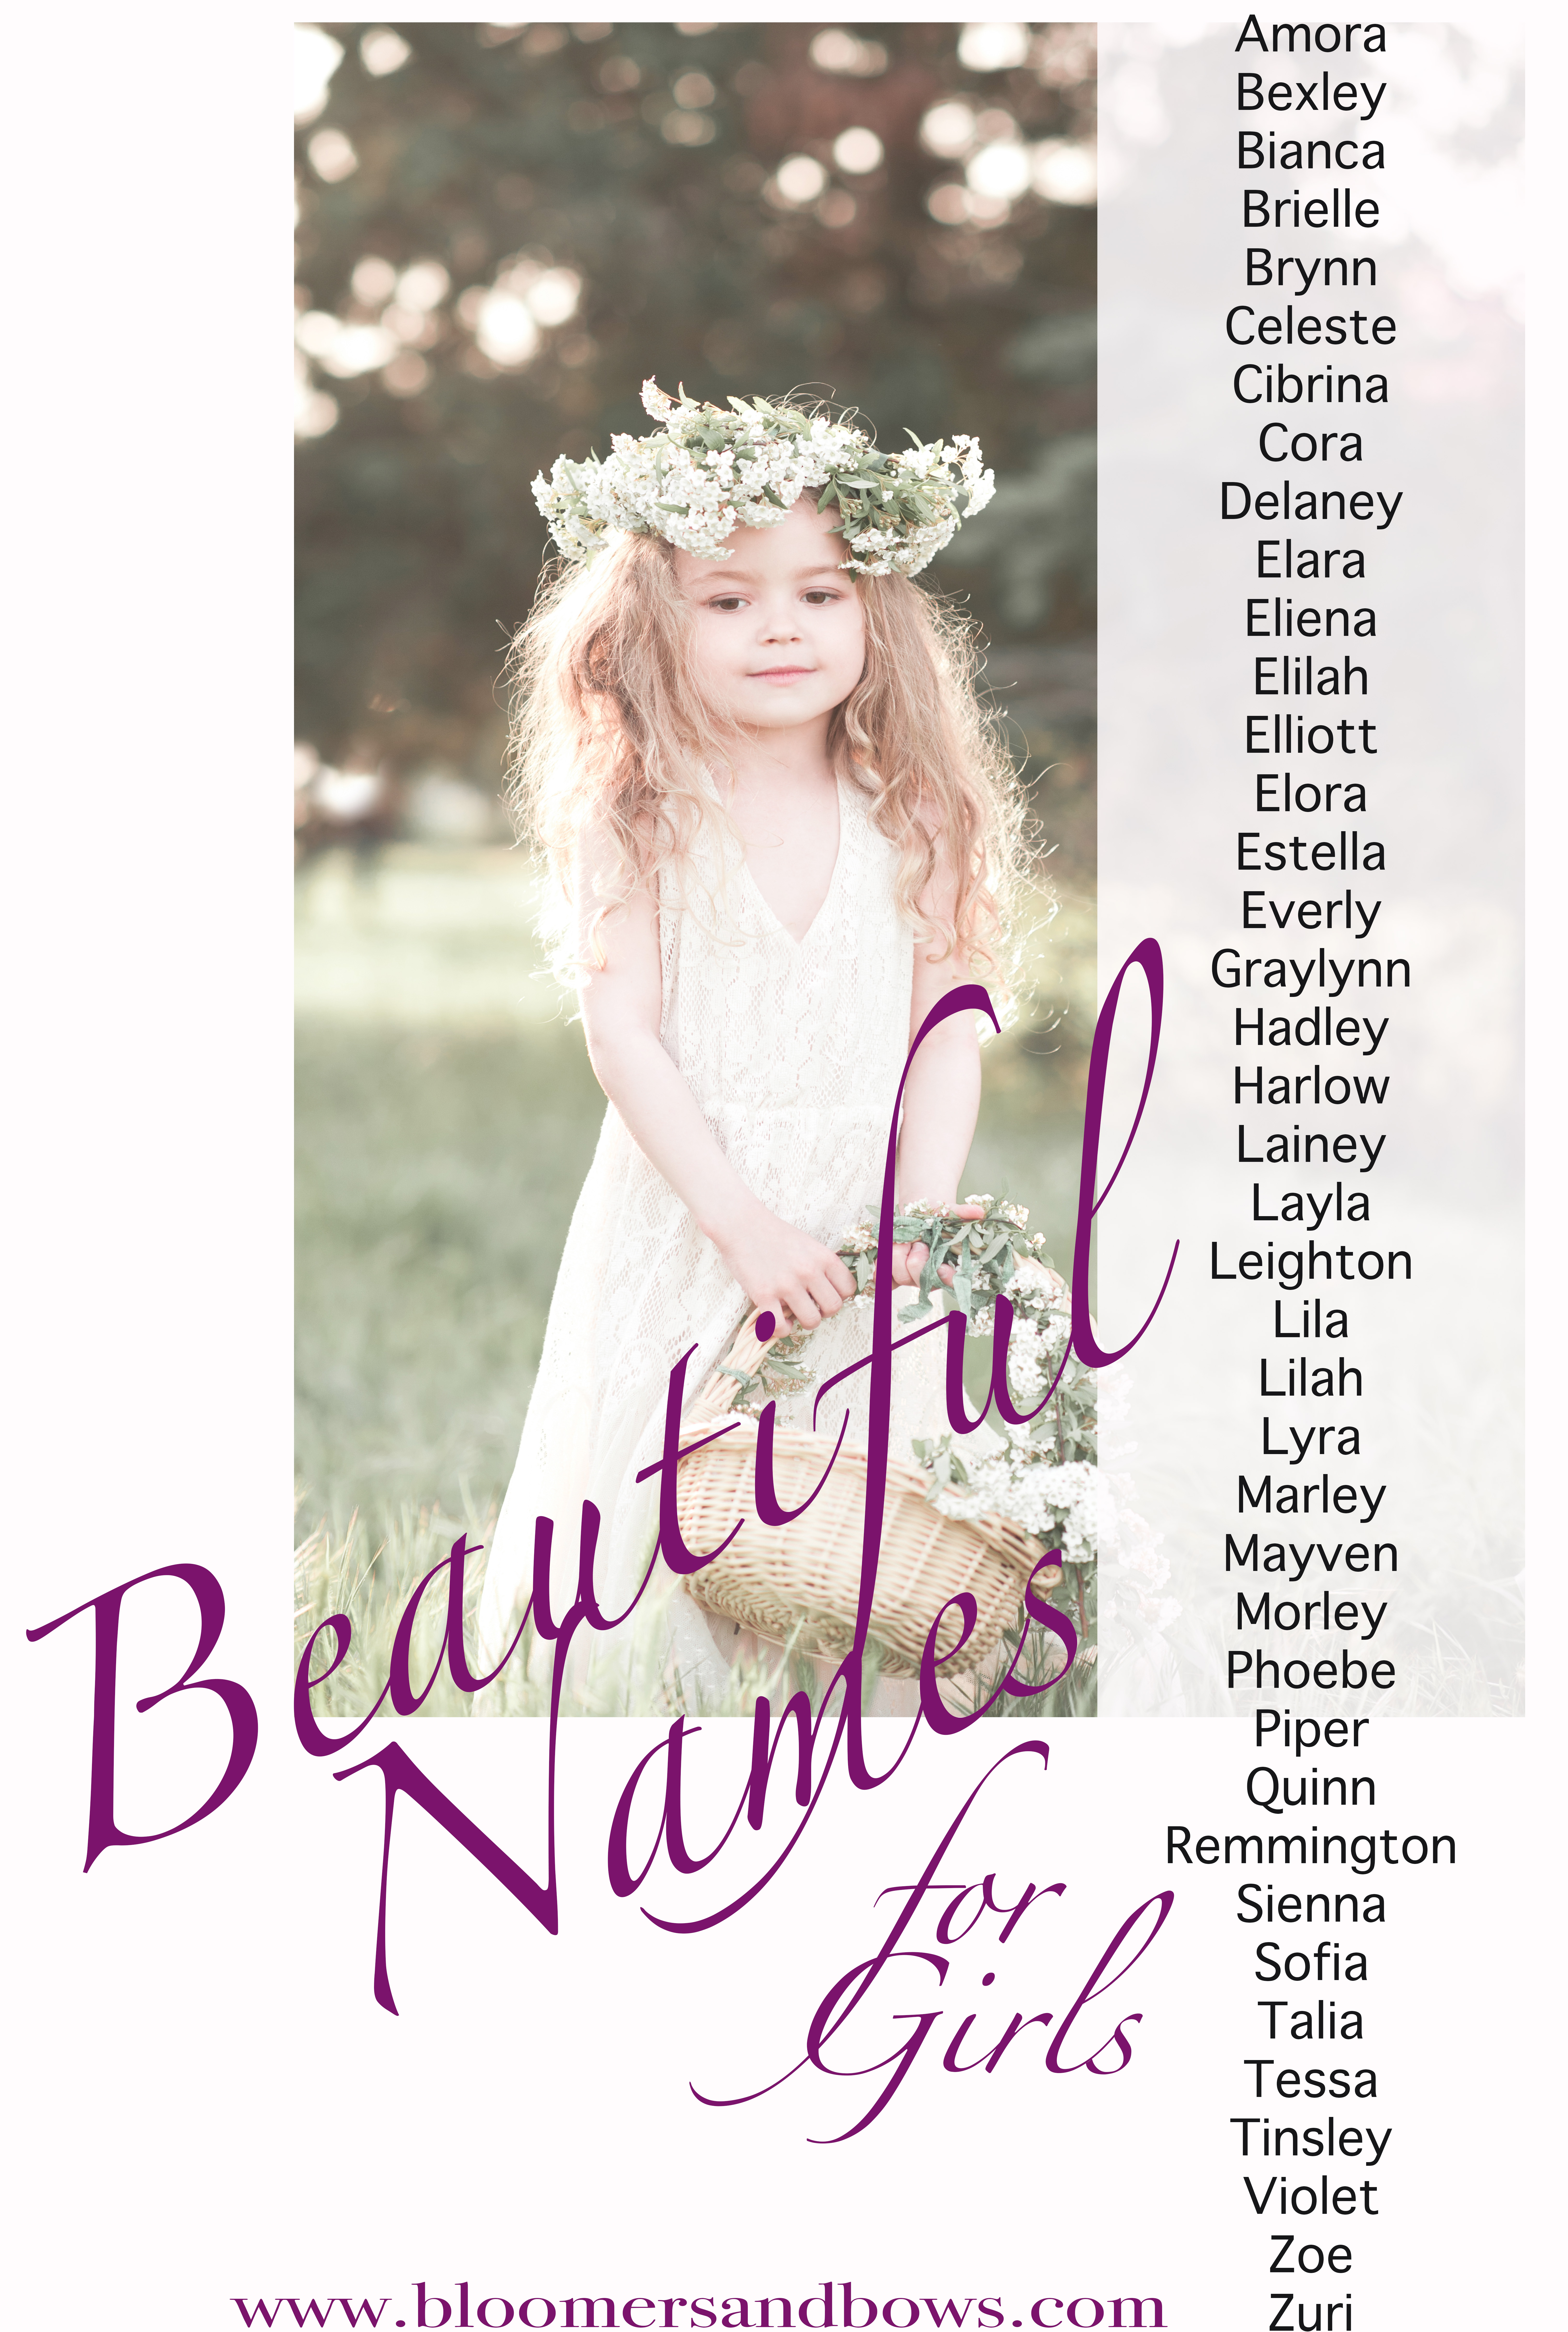 Boho and Flower Child Names for a Girl - Bloomers and Bows